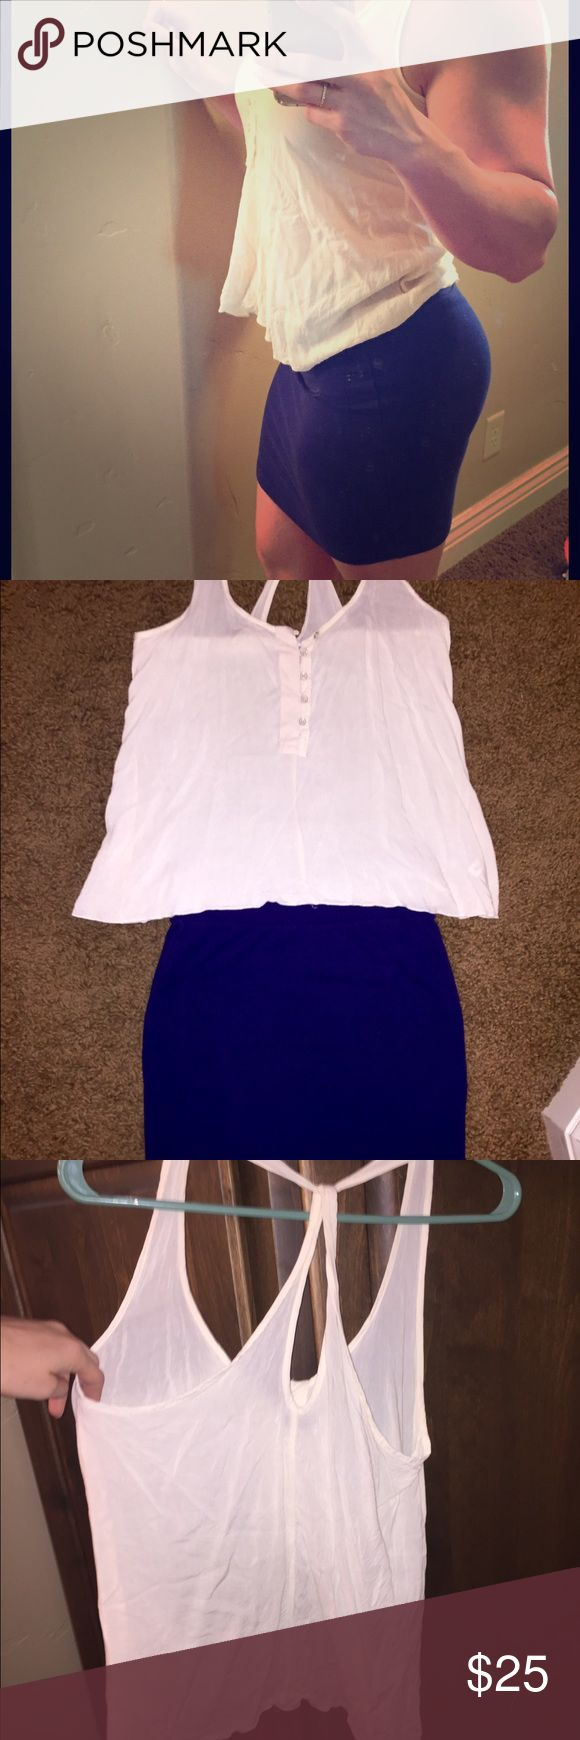 Cute, light Viscose Top & Periwinkle mini skirt Sexy and fun outfit to wear out dancing or out with the girls. Love this Gap top, and only wore it once- my boobs are too big for it. The skirt is Forever 21 and is very cute & flattering!! Make me an offer GAP Tops Tank Tops